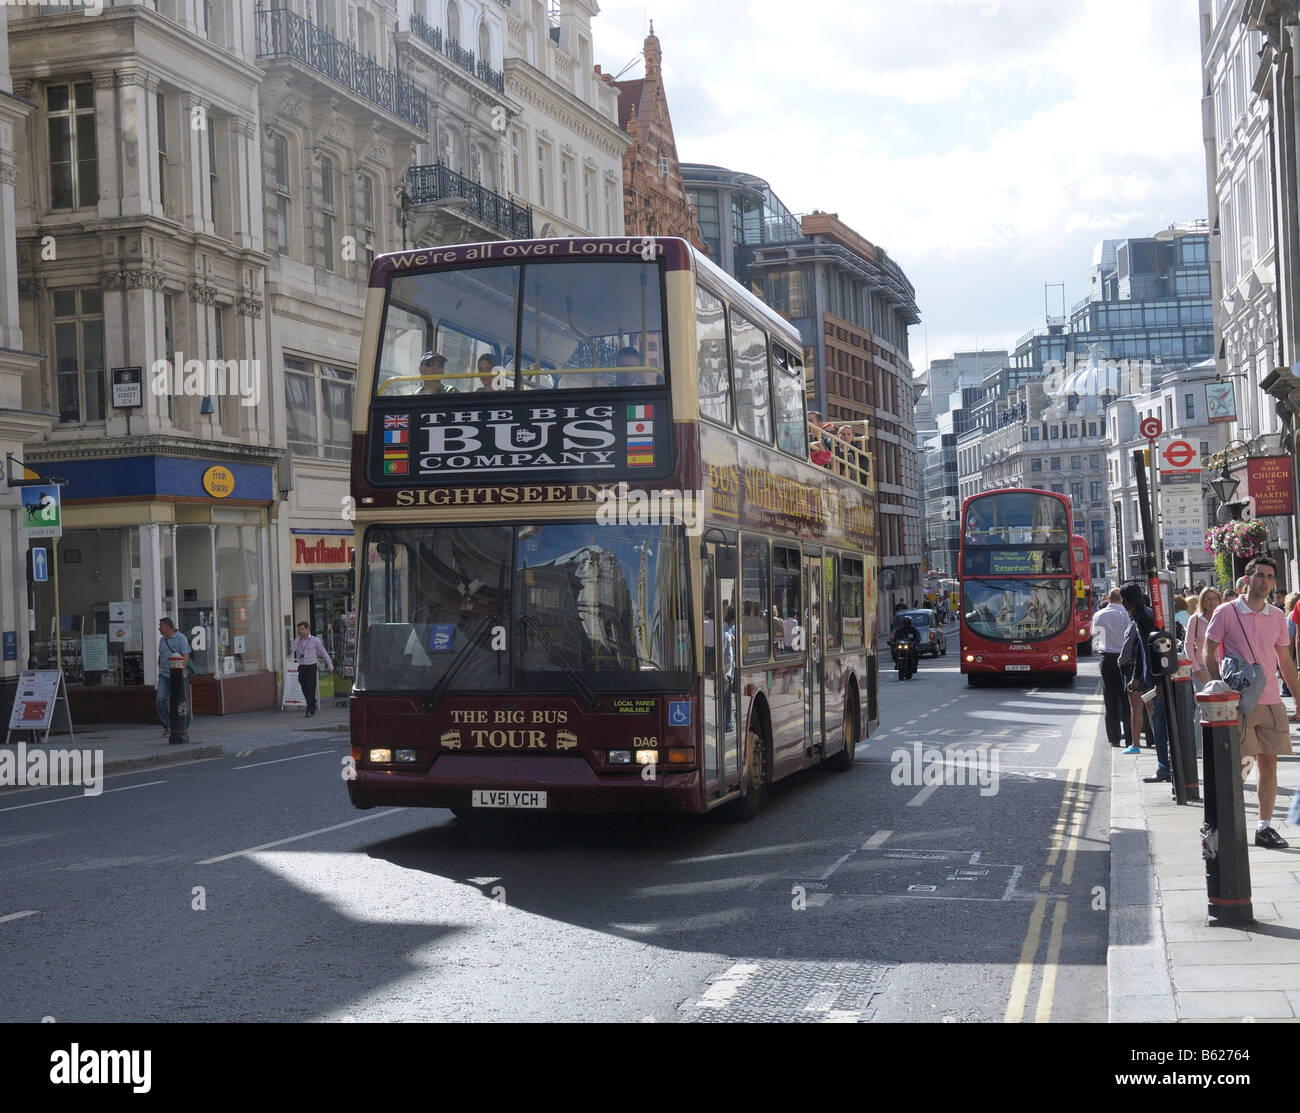 Doubledecker bus, Ludgate Hill, London, Great Britain, Europe - Stock Image